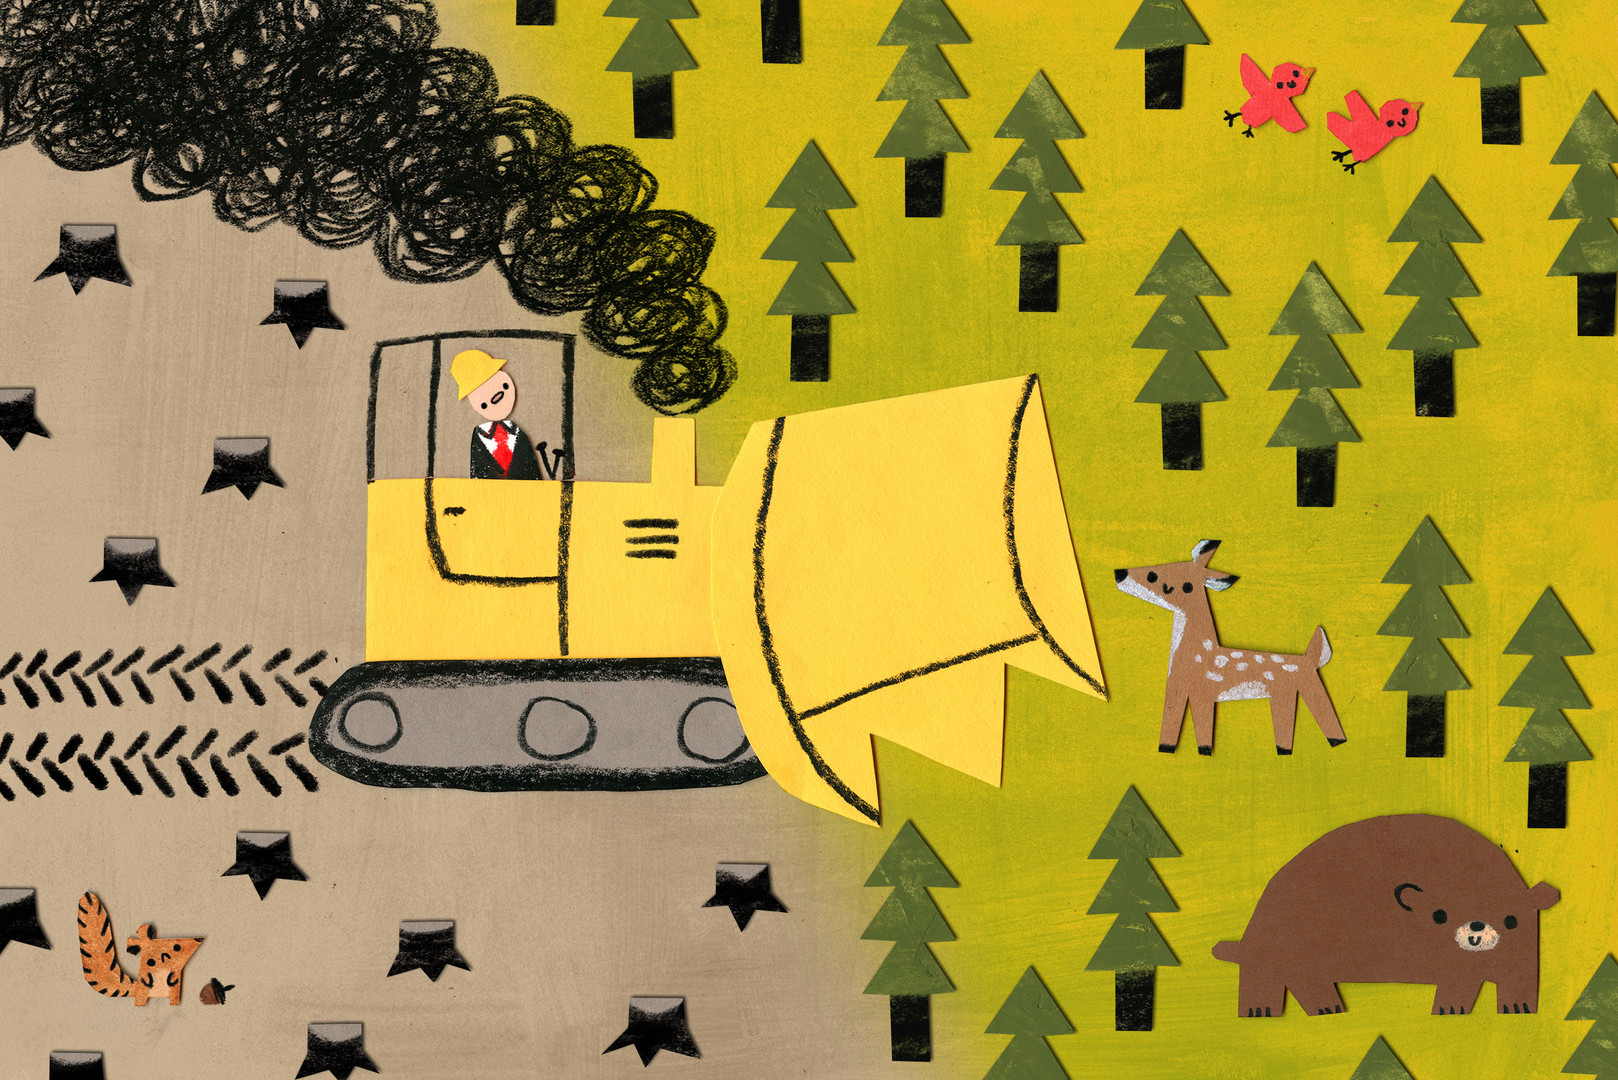 Editorial piece for an article on how the U.S. government is taking away public land.